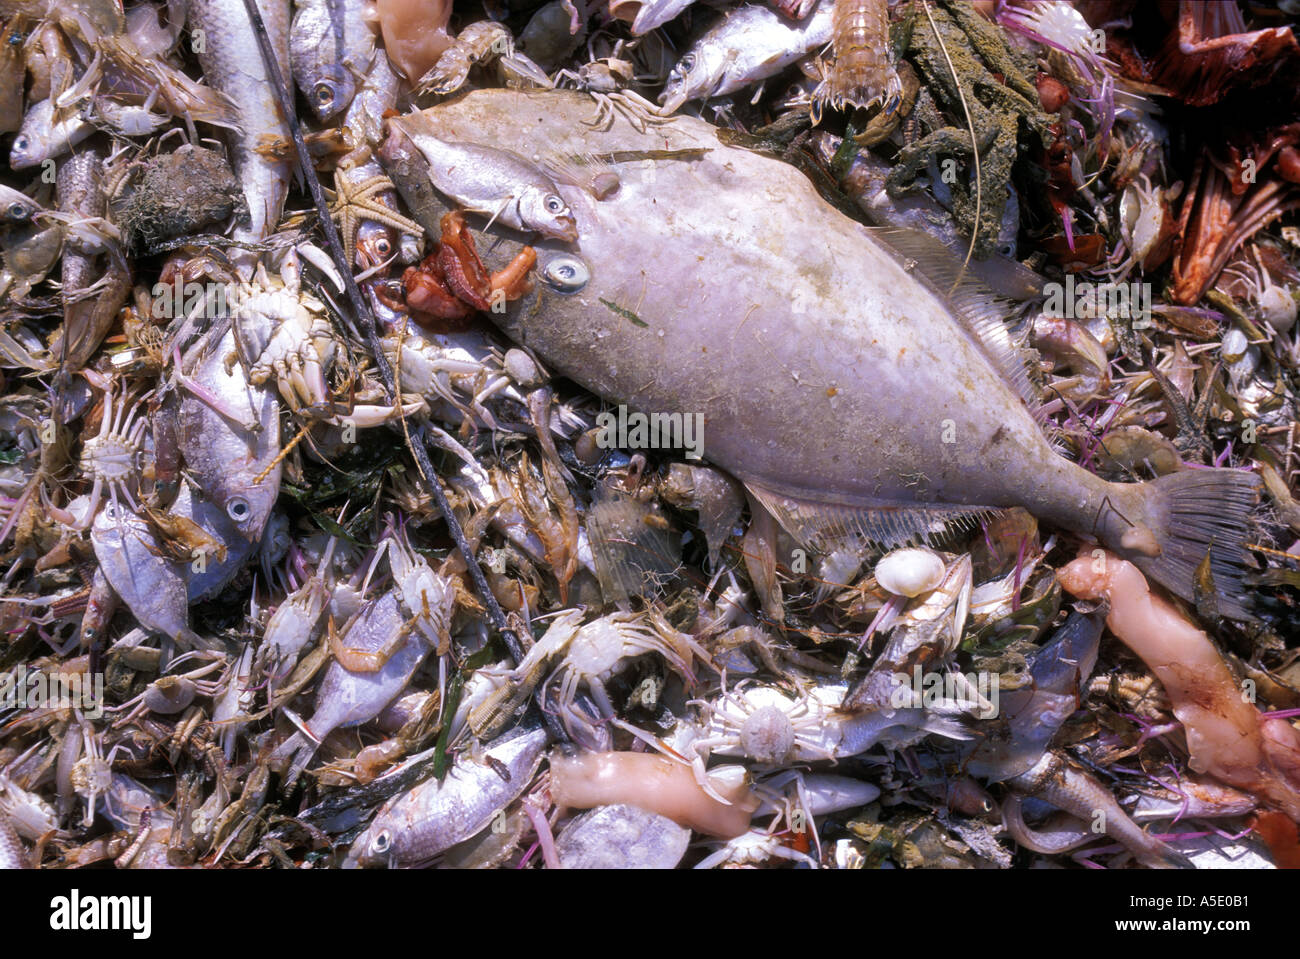 Image result for shrimp fish bycatch